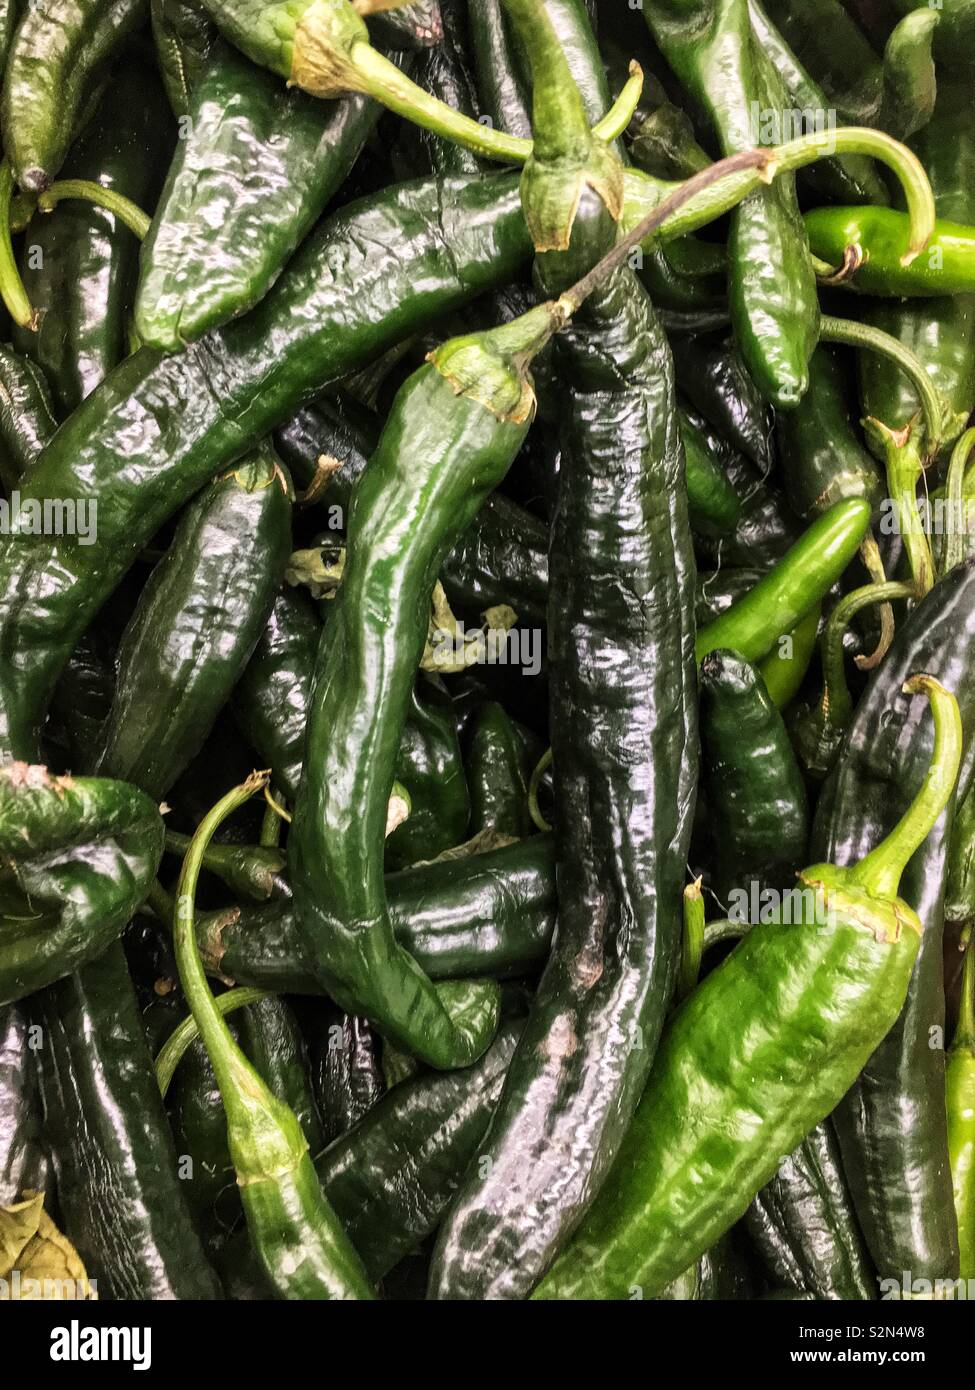 Full frame of fresh green poblano peppers piled high at the local produce market. Stock Photo